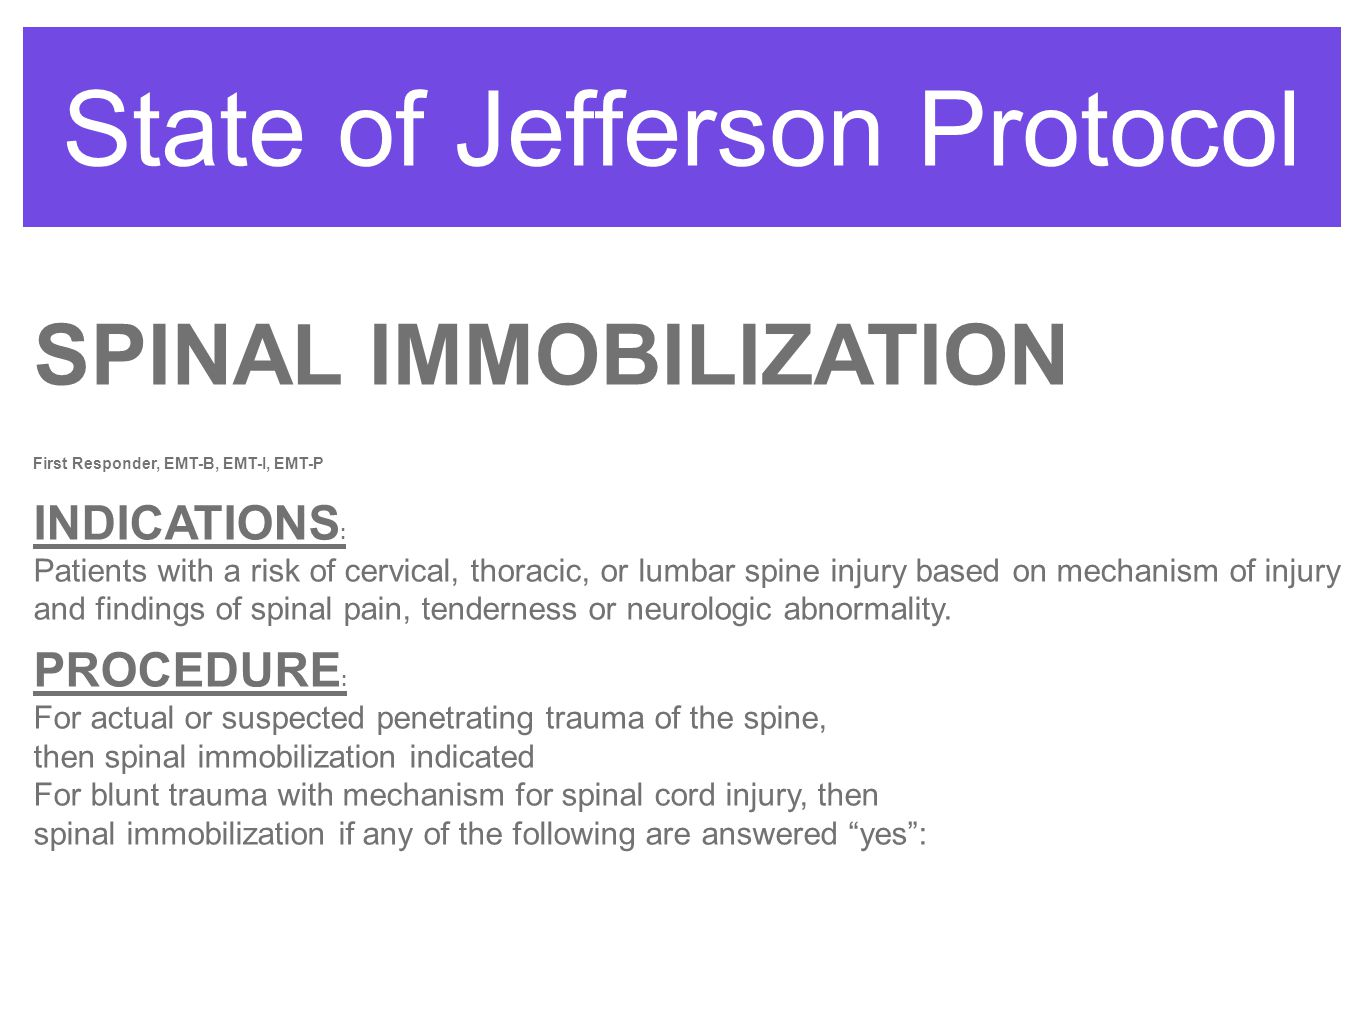 State of Jefferson Protocol SPINAL IMMOBILIZATION First Responder, EMT-B, EMT-I, EMT-P INDICATIONS : Patients with a risk of cervical, thoracic, or lu